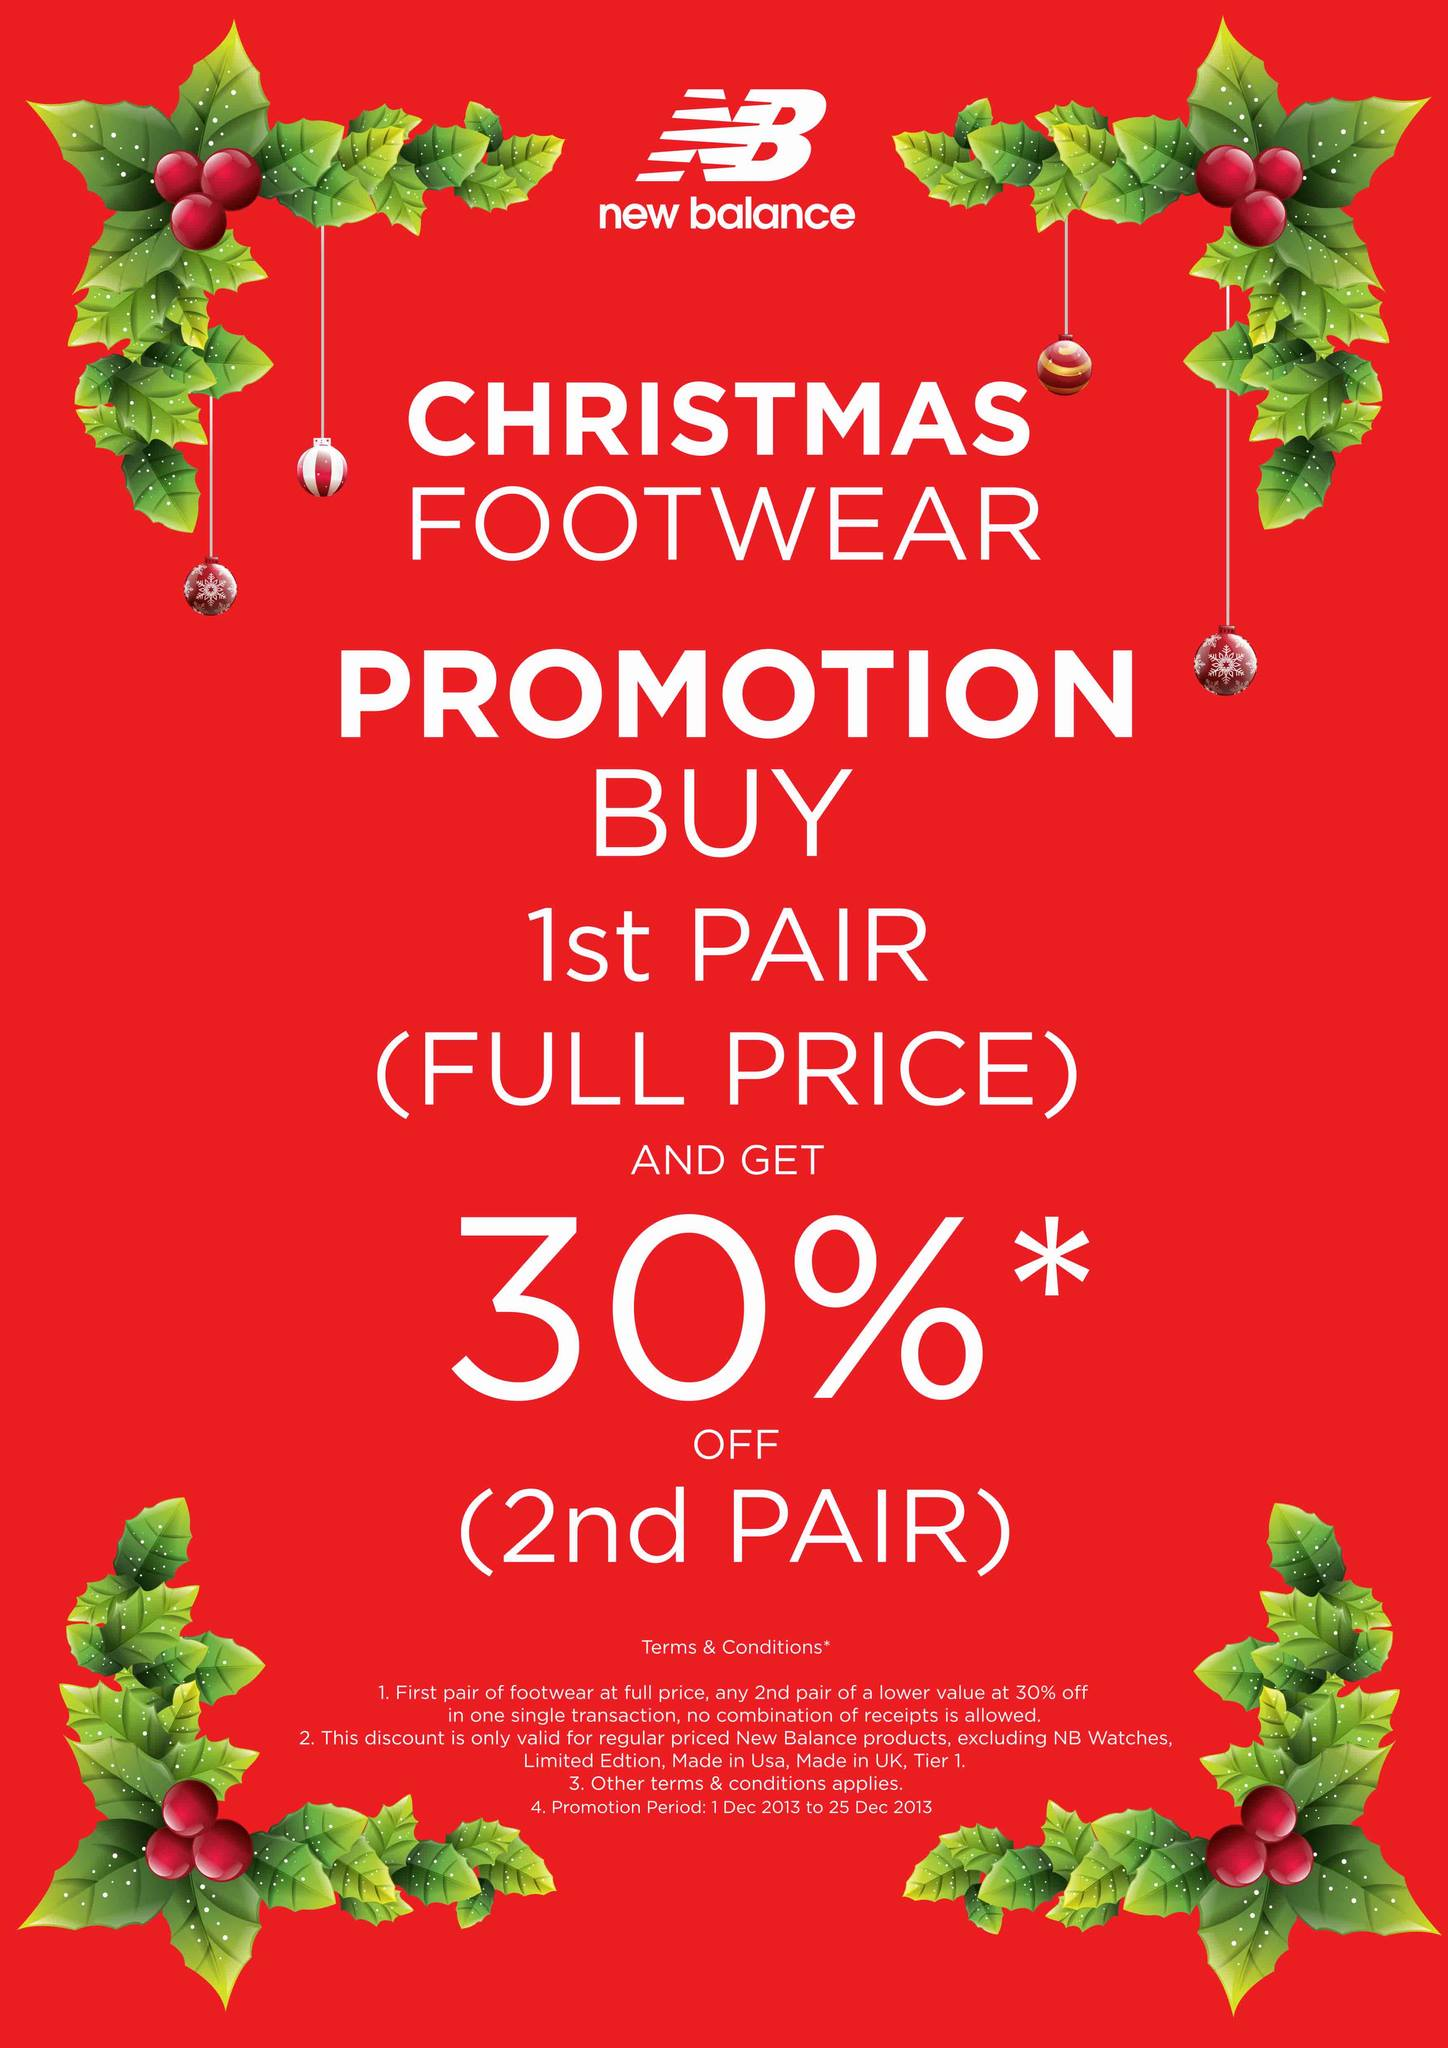 927c8f5fe917 New Balance Christmas Footwear Promotion 2013  30% Off Second Pair Purchase